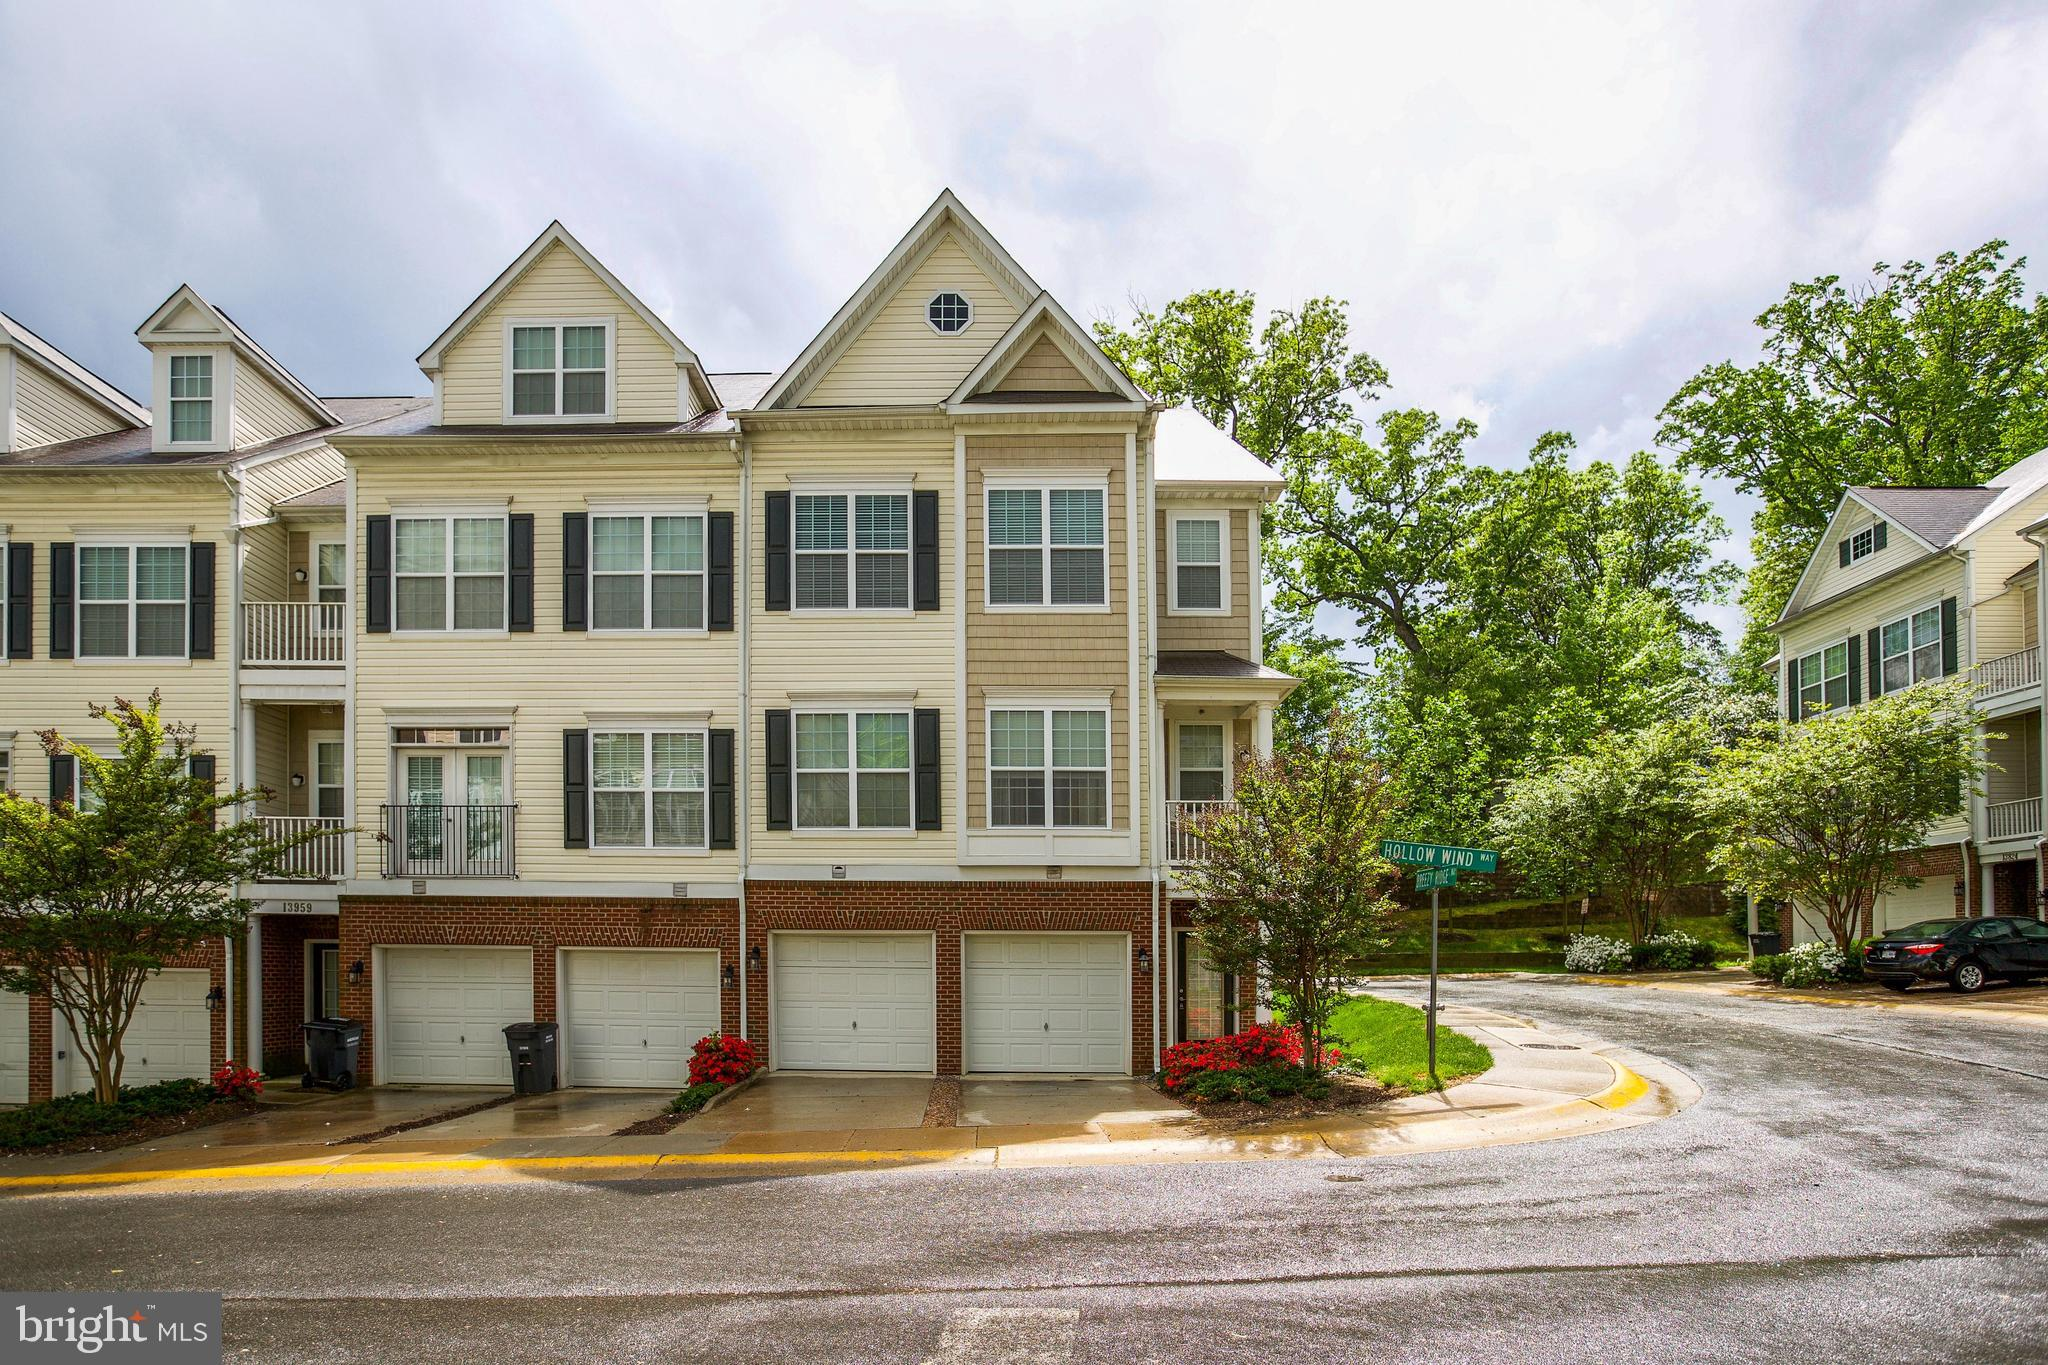 Private, beautiful end-unit condo with easy access to route 95 and walking distance to shopping centers. Don't miss this chance for a rare end-unit!